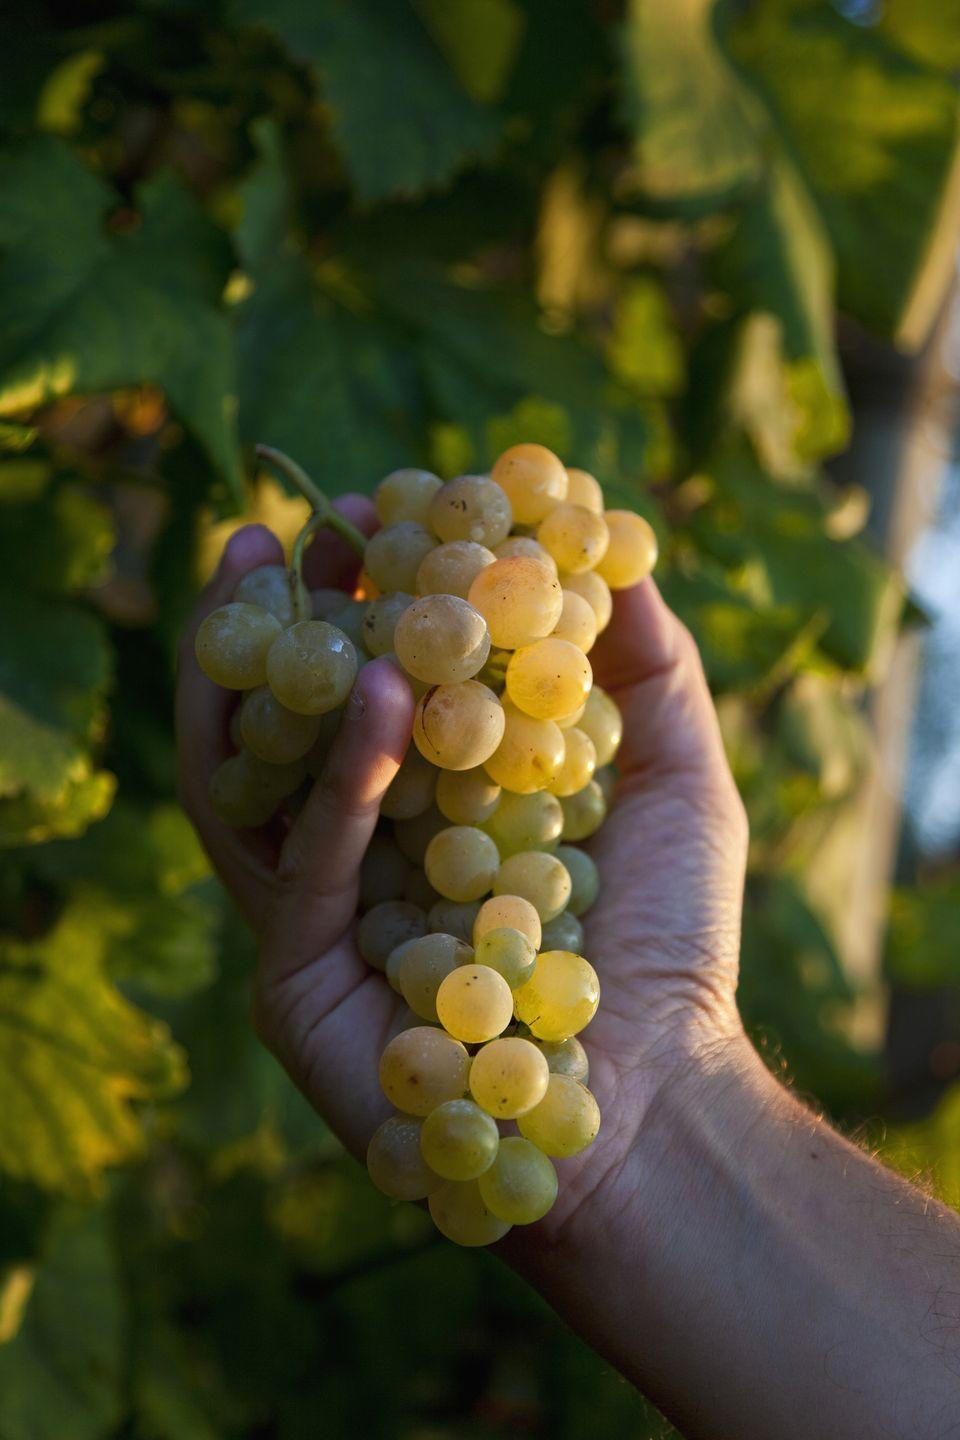 "<p>Before the clock strikes midnight on Dec. 31, people in Spain and Spanish-speaking countries around the world partake in a tradition called <em>las doce uvas de la suerte</em>, the 12 lucky grapes. The goal is to eat all 12 before midnight, if you want to have good luck in <a href=""https://www.npr.org/sections/thesalt/2012/12/26/168092673/green-grapes-and-red-underwear-a-spanish-new-years-eve"" rel=""nofollow noopener"" target=""_blank"" data-ylk=""slk:the new year"" class=""link rapid-noclick-resp"">the new year</a>, according to NPR. </p><p><strong>Recipes: </strong></p><p><em><a href=""https://www.womansday.com/food-recipes/food-drinks/a28797240/grape-jamwiches-recipe/"" rel=""nofollow noopener"" target=""_blank"" data-ylk=""slk:Grape Jamwiches"" class=""link rapid-noclick-resp"">Grape Jamwiches</a></em></p><p><em><a href=""https://www.womansday.com/food-recipes/food-drinks/recipes/a17225/green-pea-soup-grape-salsa-3462/"" rel=""nofollow noopener"" target=""_blank"" data-ylk=""slk:Fresh Green Pea Soup with Grape Salsa"" class=""link rapid-noclick-resp"">Fresh Green Pea Soup with Grape Salsa</a></em></p><p><em><a href=""https://www.womansday.com/food-recipes/food-drinks/recipes/a16497/grape-ginger-tart-2807/"" rel=""nofollow noopener"" target=""_blank"" data-ylk=""slk:Grape and Ginger Tart"" class=""link rapid-noclick-resp"">Grape and Ginger Tart</a></em></p><p><em><a href=""https://www.womansday.com/food-recipes/food-drinks/recipes/a37272/hazelnut-grapes-recipe-clv0911/"" rel=""nofollow noopener"" target=""_blank"" data-ylk=""slk:Hazelnut-Crusted Grapes"" class=""link rapid-noclick-resp"">Hazelnut-Crusted Grapes</a></em></p><p><em><a href=""https://www.womansday.com/food-recipes/food-drinks/recipes/a21094/grilled-grapes-ghk/"" rel=""nofollow noopener"" target=""_blank"" data-ylk=""slk:Grilled Grapes"" class=""link rapid-noclick-resp"">Grilled Grapes</a><br></em></p>"